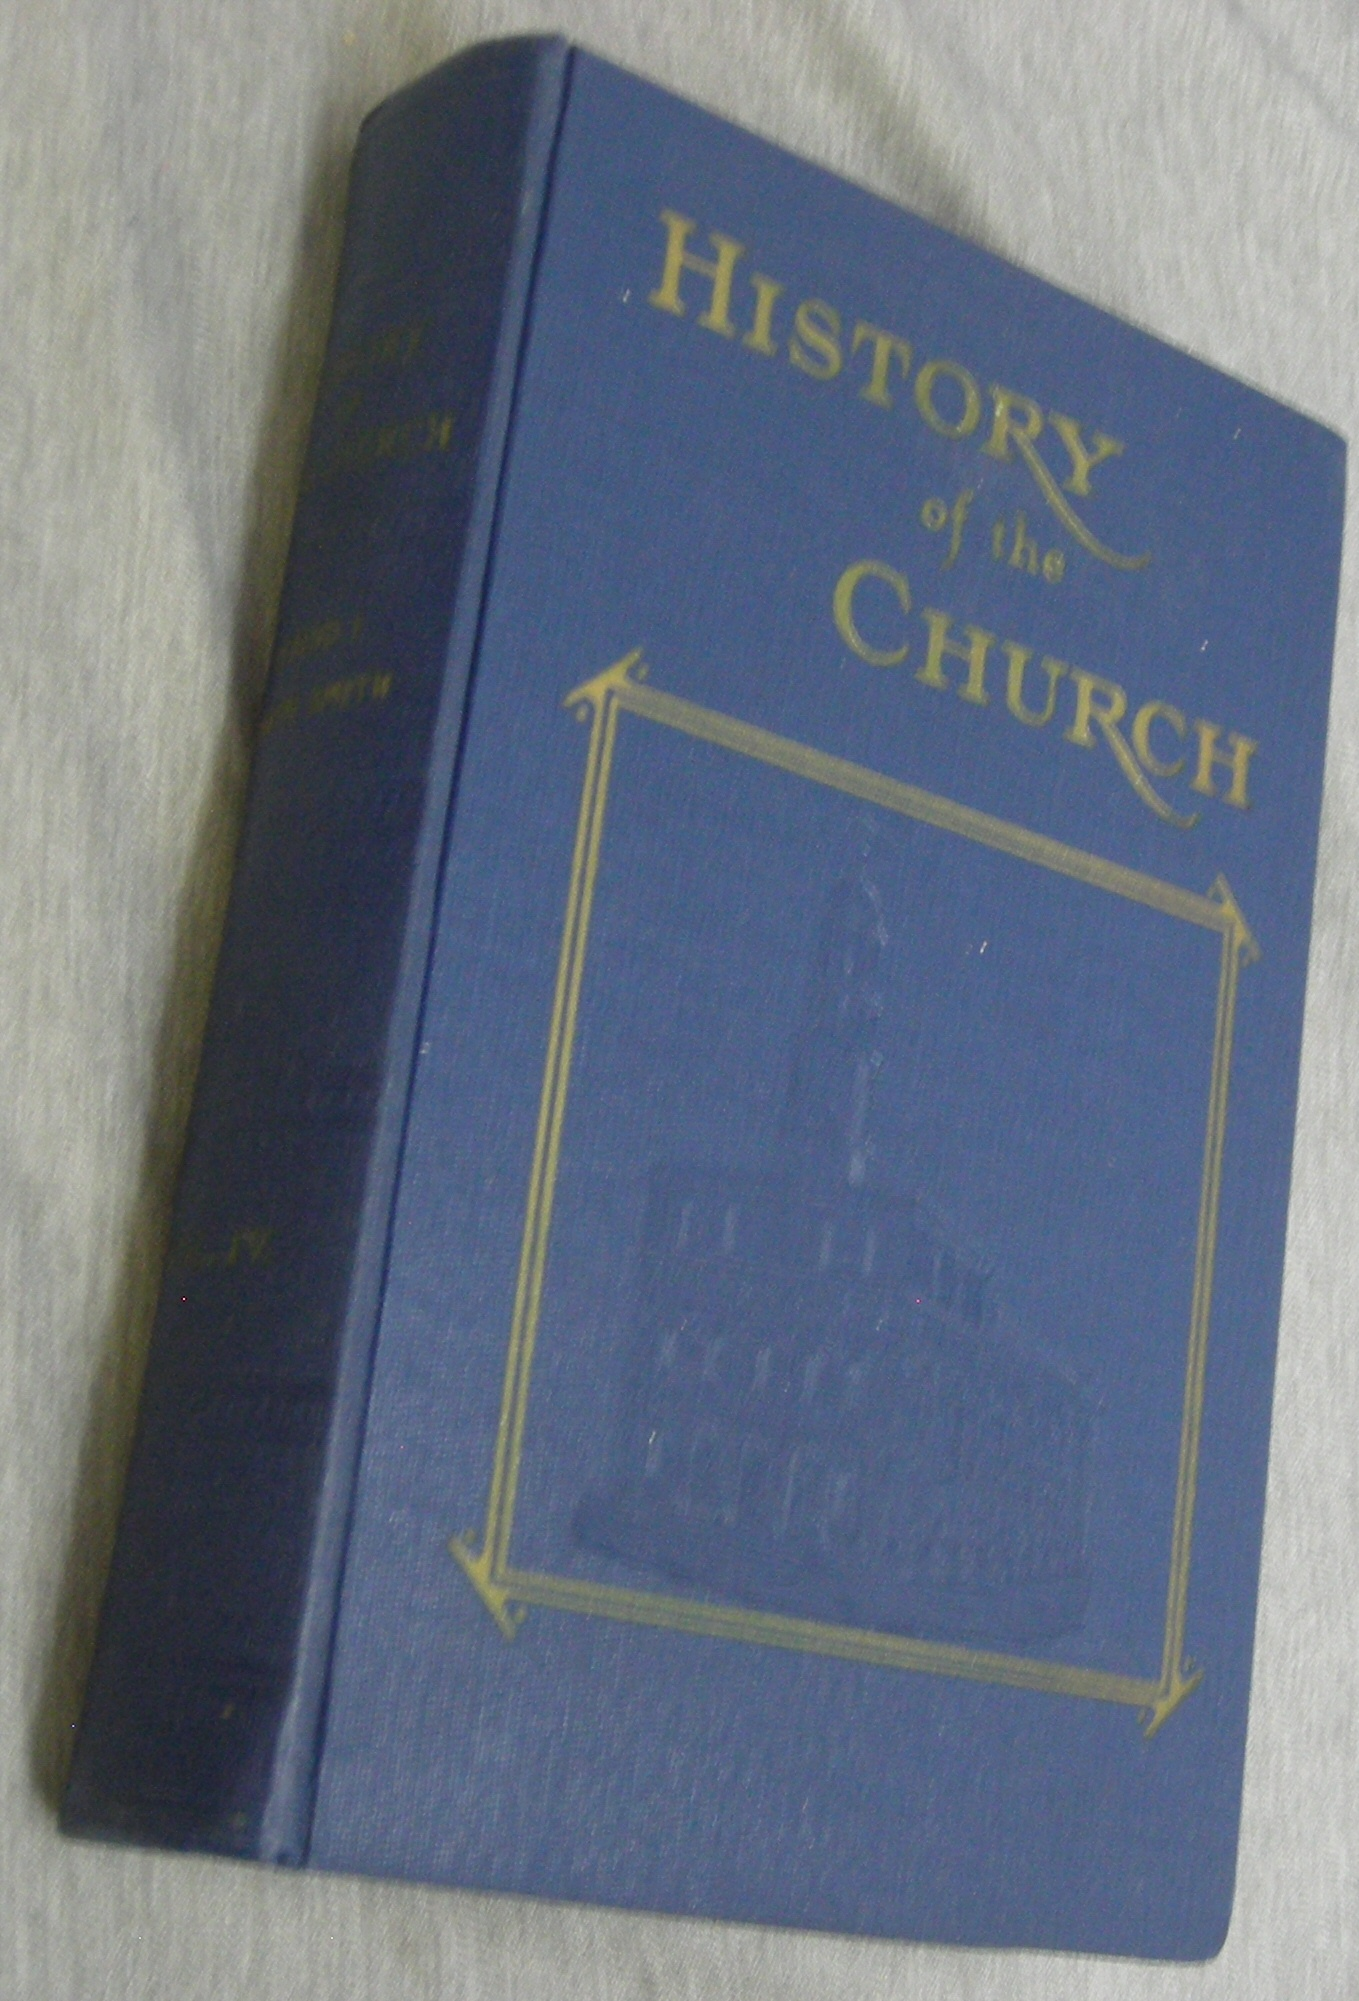 HISTORY of the CHURCH of JESUS CHRIST of LATTER-DAY SAINTS - Vol 4 - Offen Referred to As the Documentary History of the Church., Smith, Joseph Jr. (Introduction and Notes by B. H. Roberts)